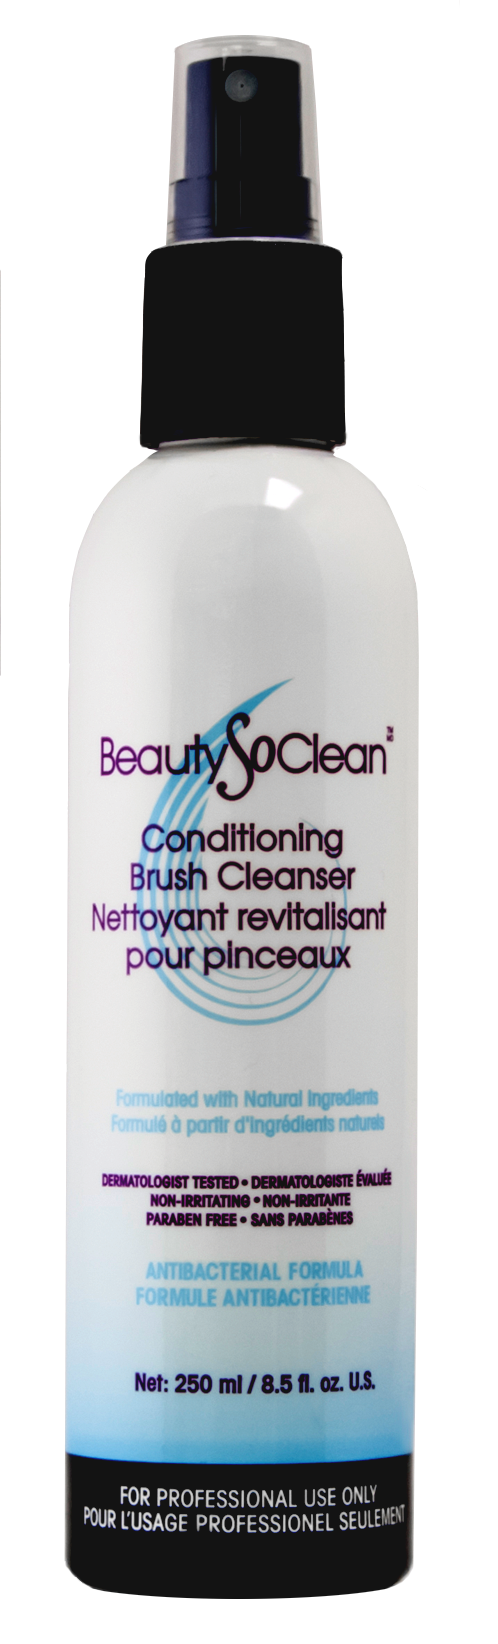 BeautySoClean Conditioning Brush Cleanser close up